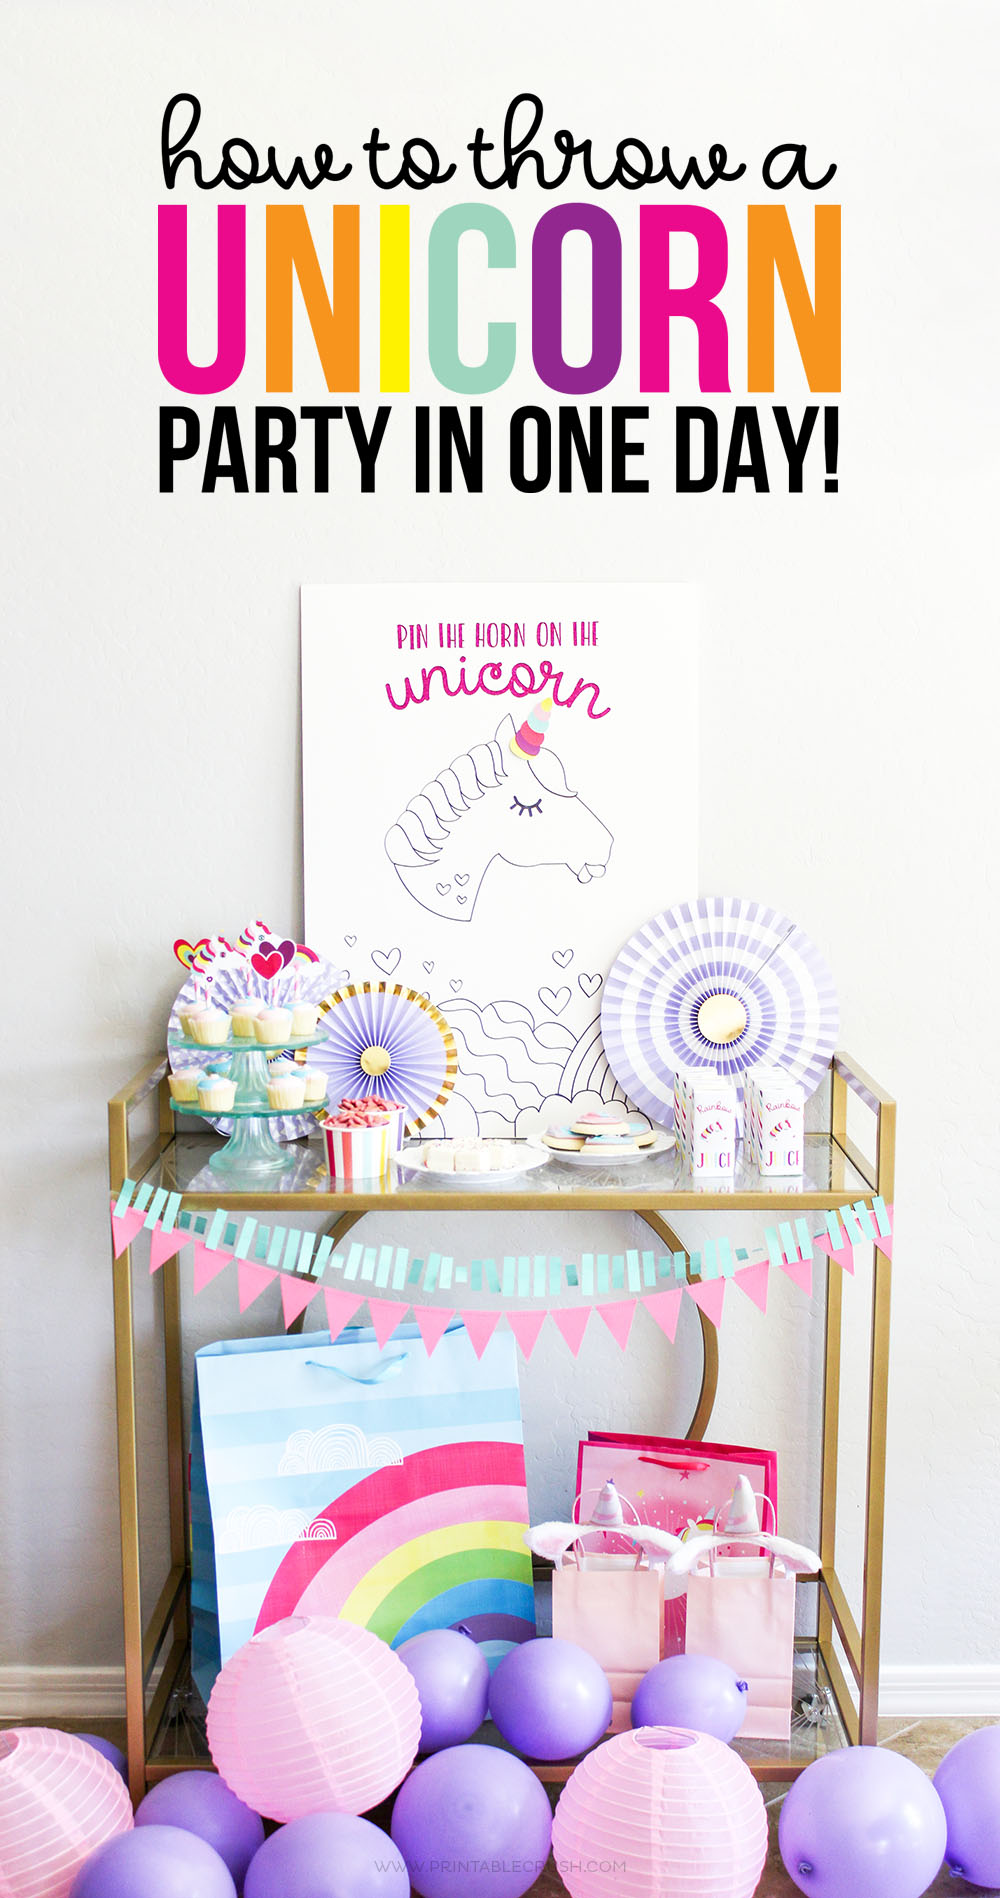 Party set up with multi-colored unicorn party supplies and purple balloons